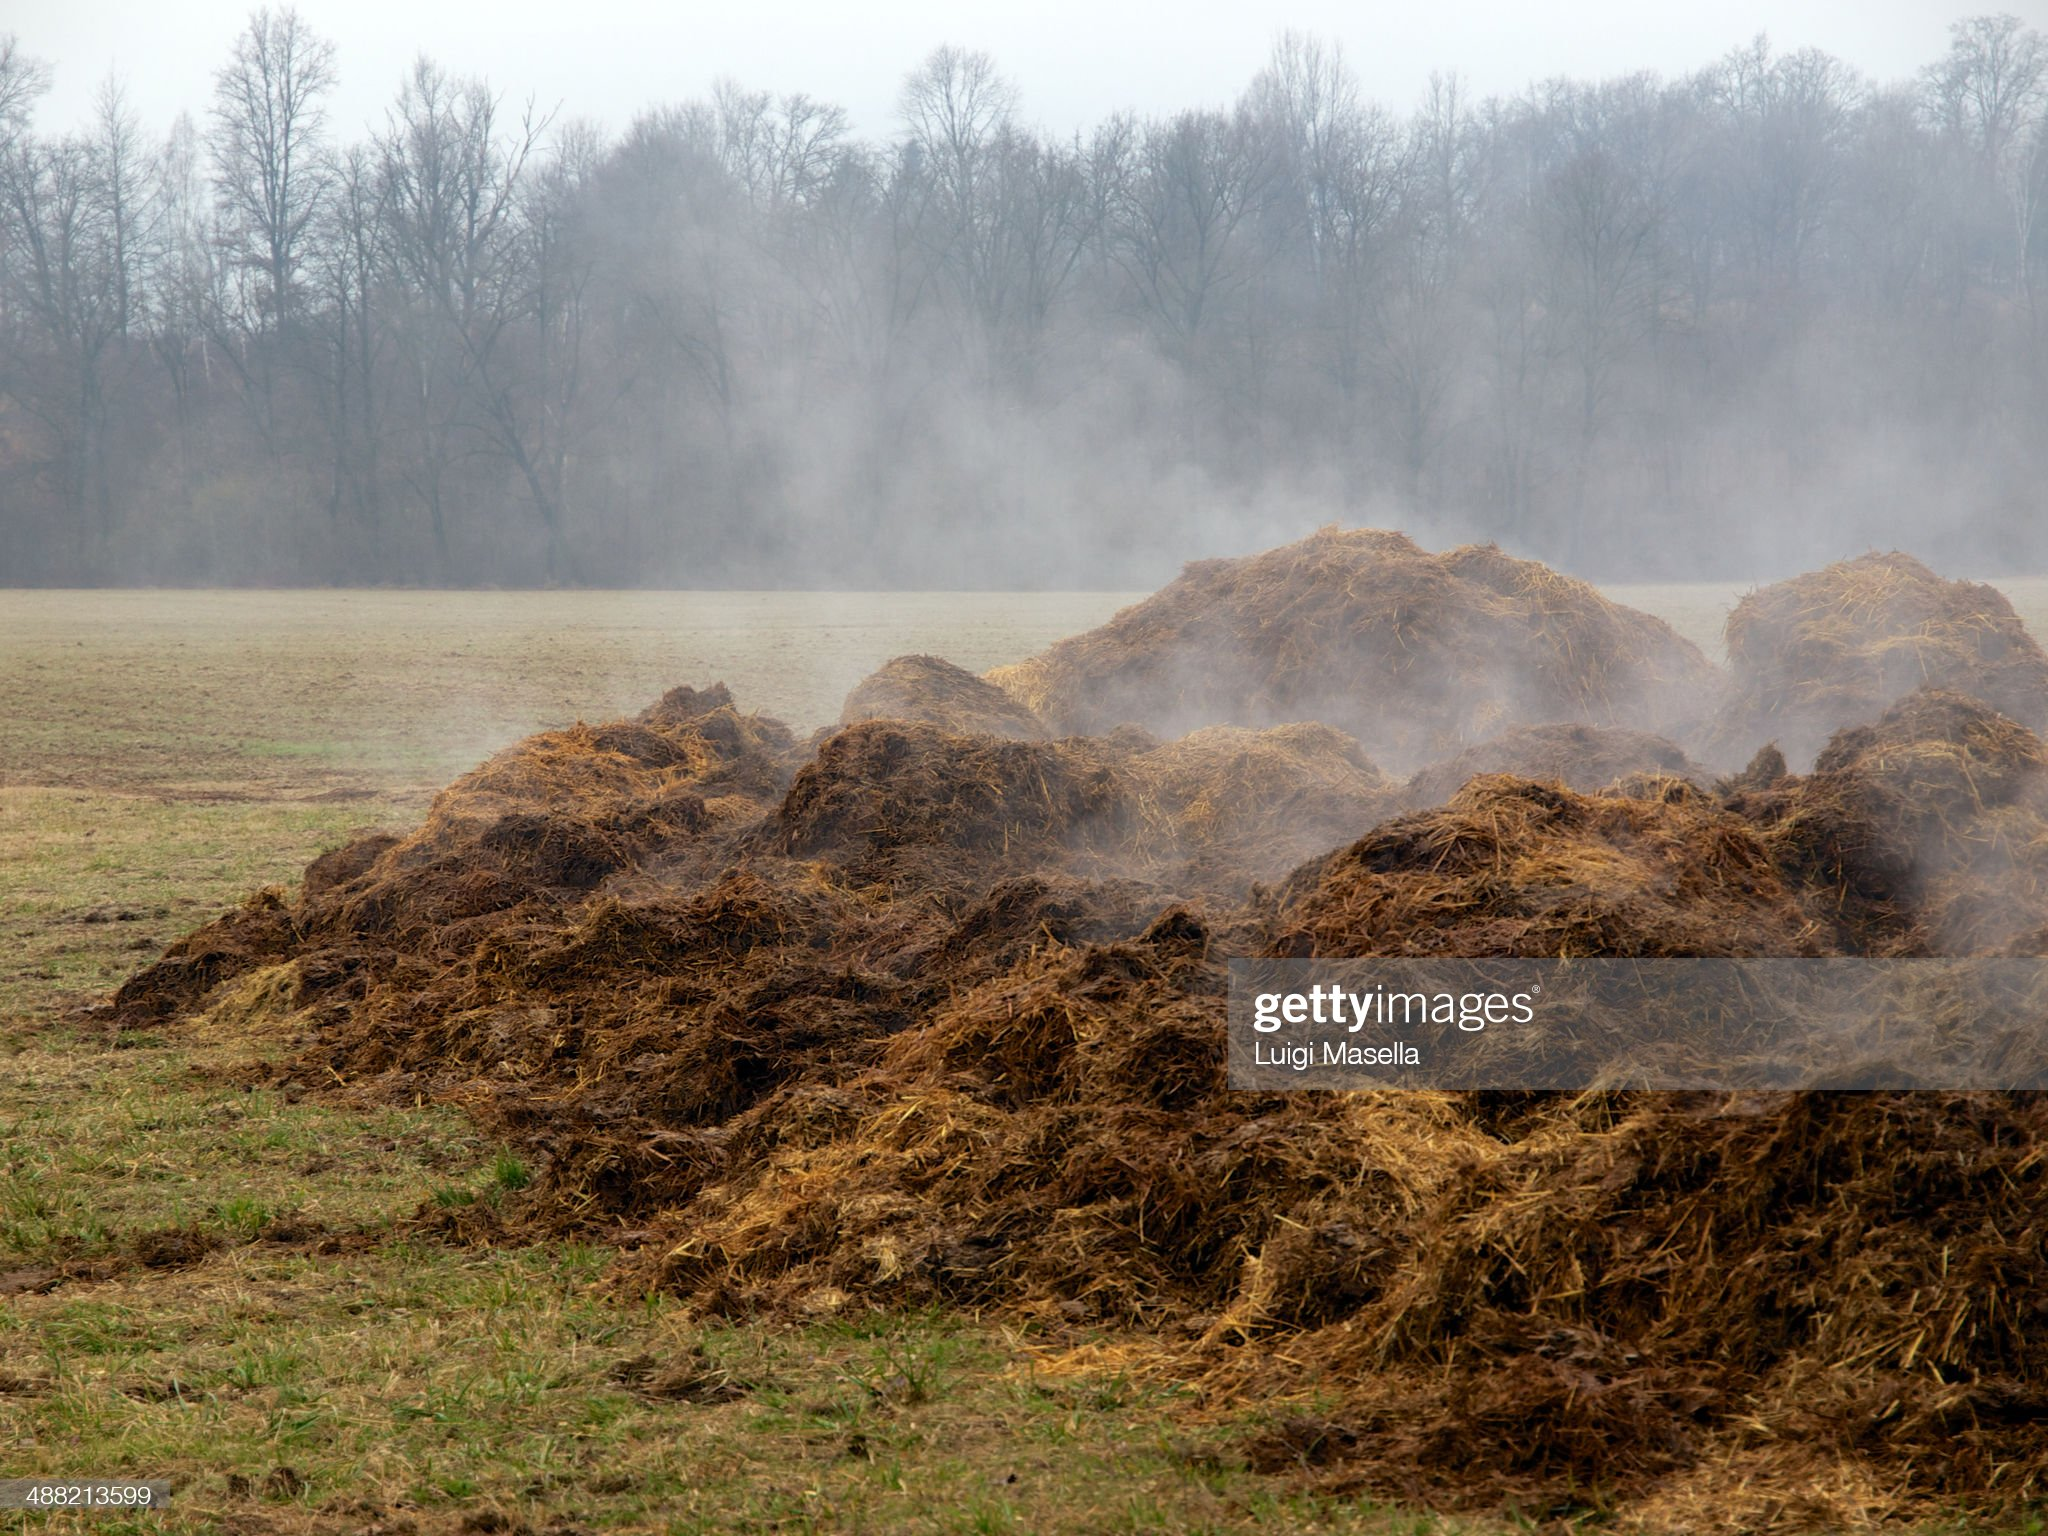 steaming-manure-picture-id488213599?s=20